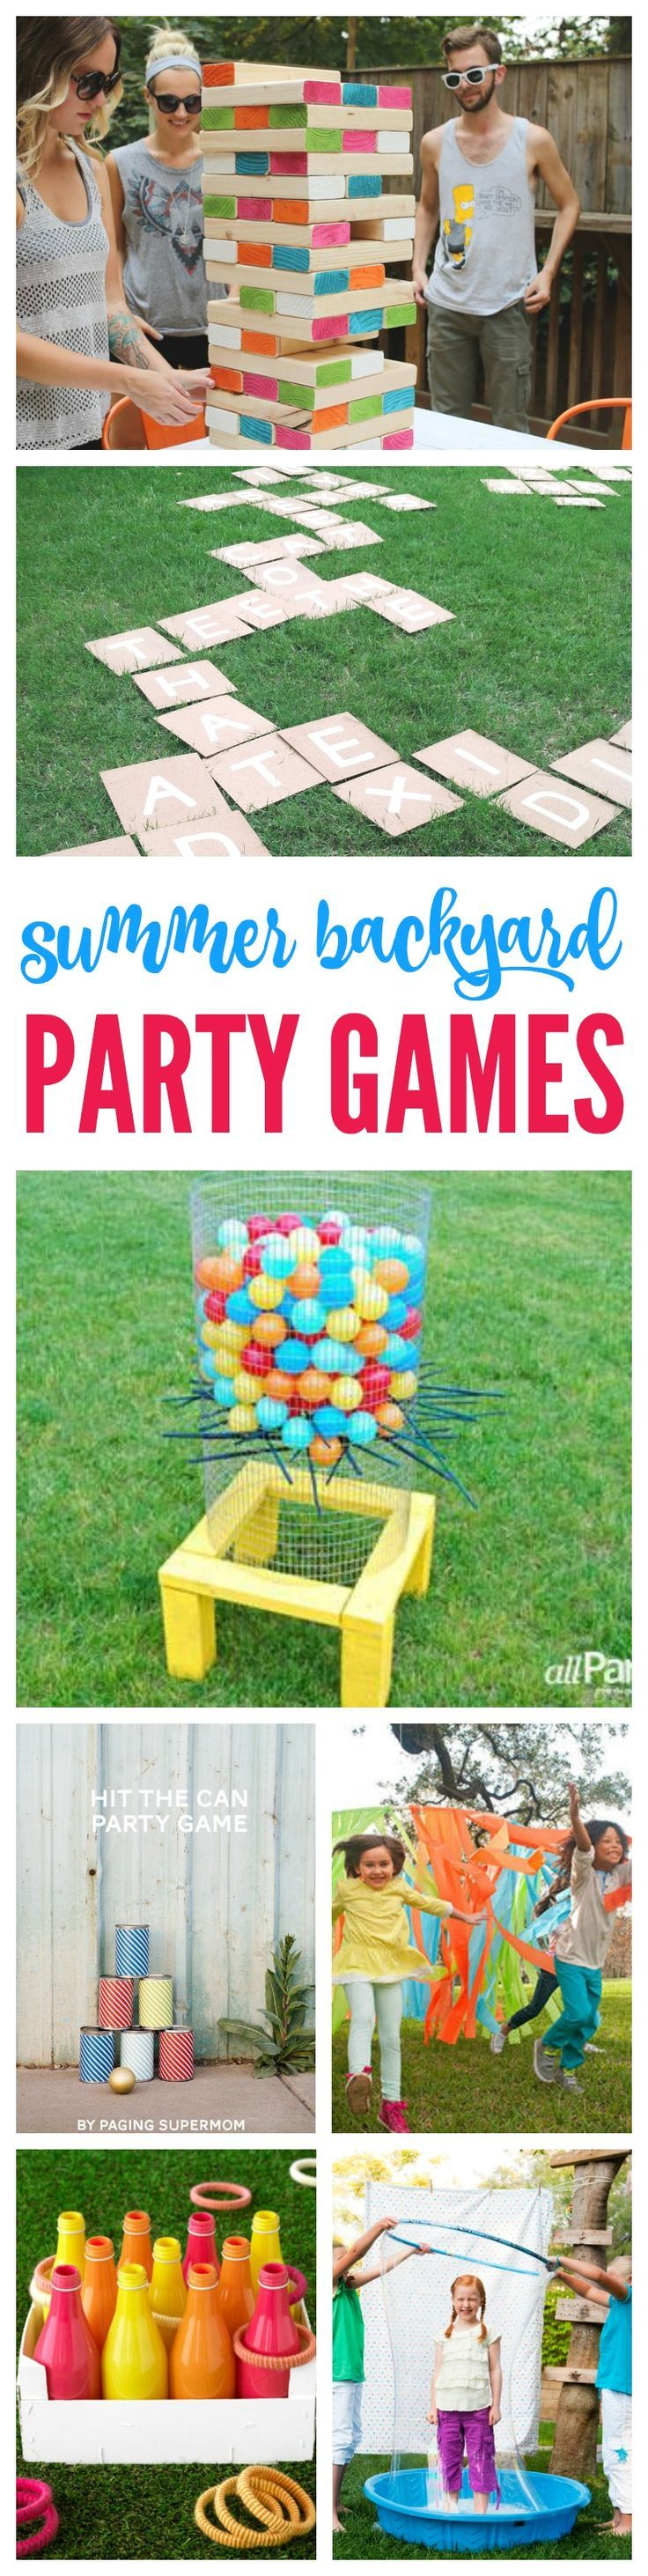 I Love Summer Theres Nothing Better Than A Backyard Party With Friends These Games Are Sure To Make Your BBQ Success Full